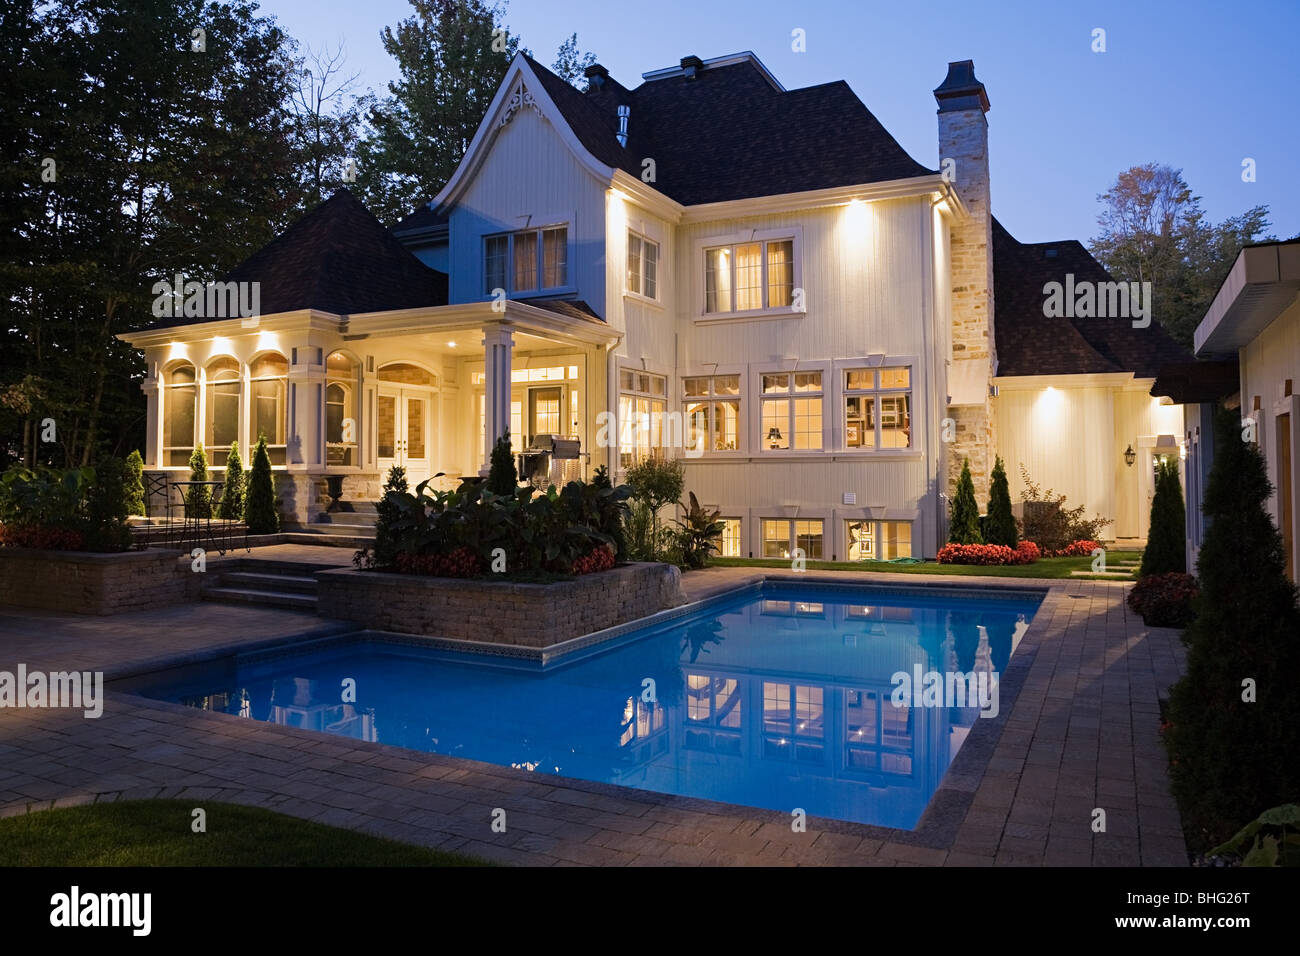 House with swimming pool - Stock Image